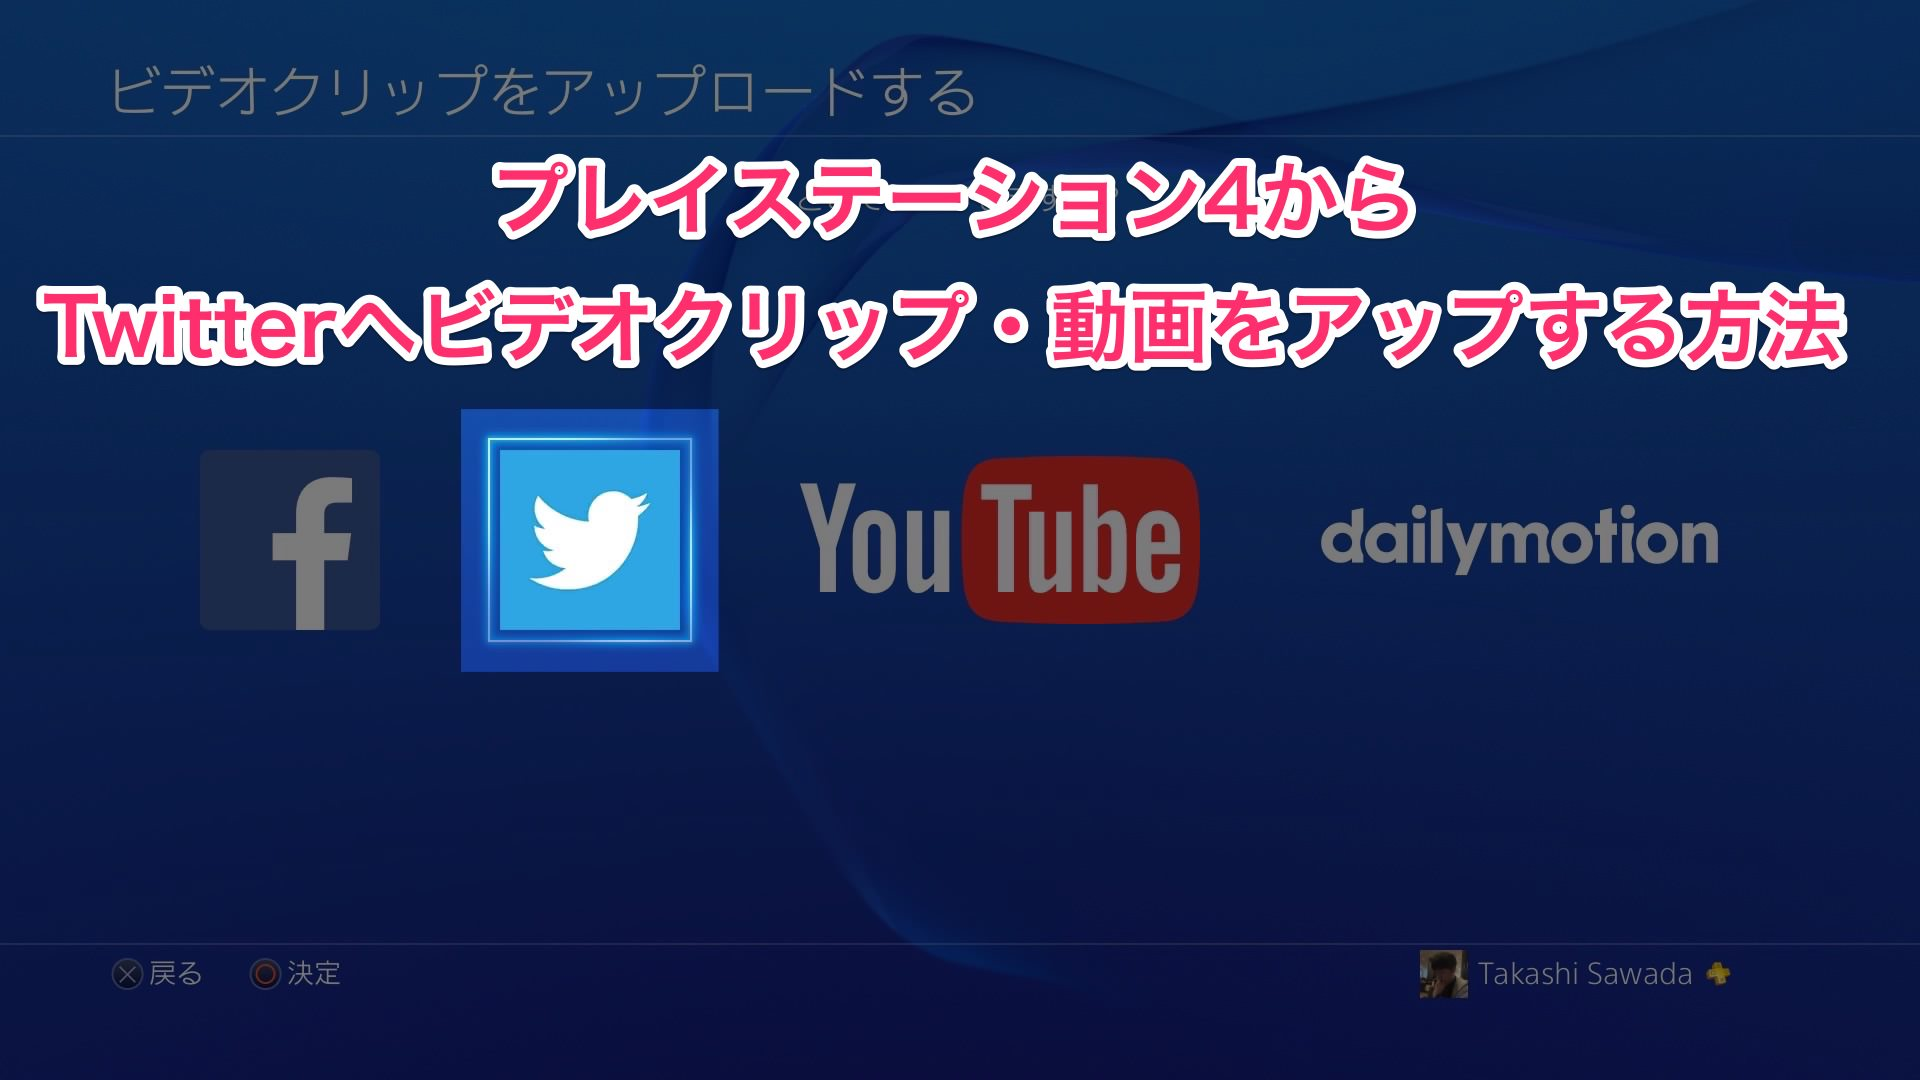 How to upload video for twitter from playstation 4 1